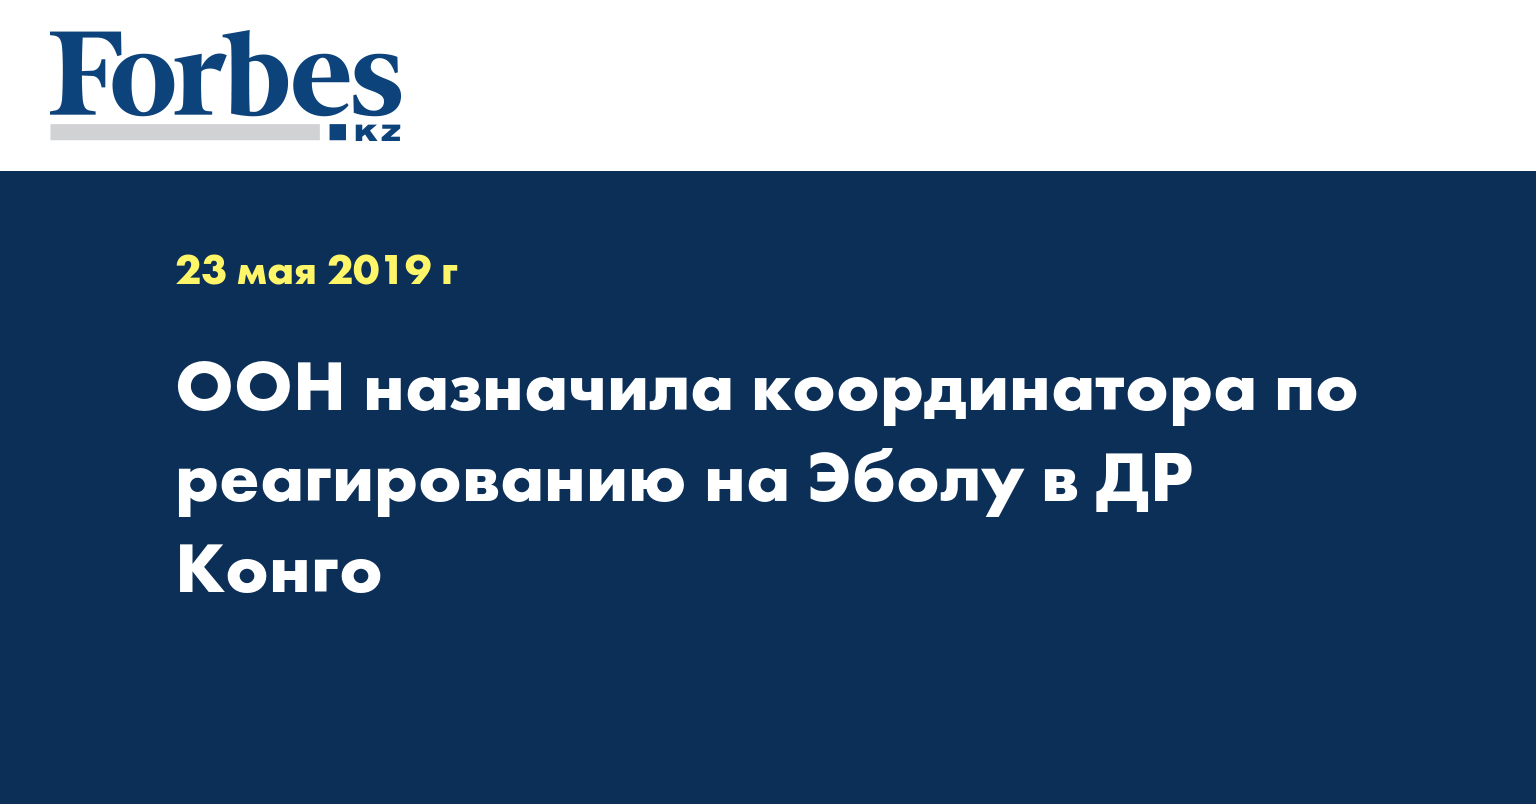 ООН назначила координатора по реагированию на Эболу в ДР Конго